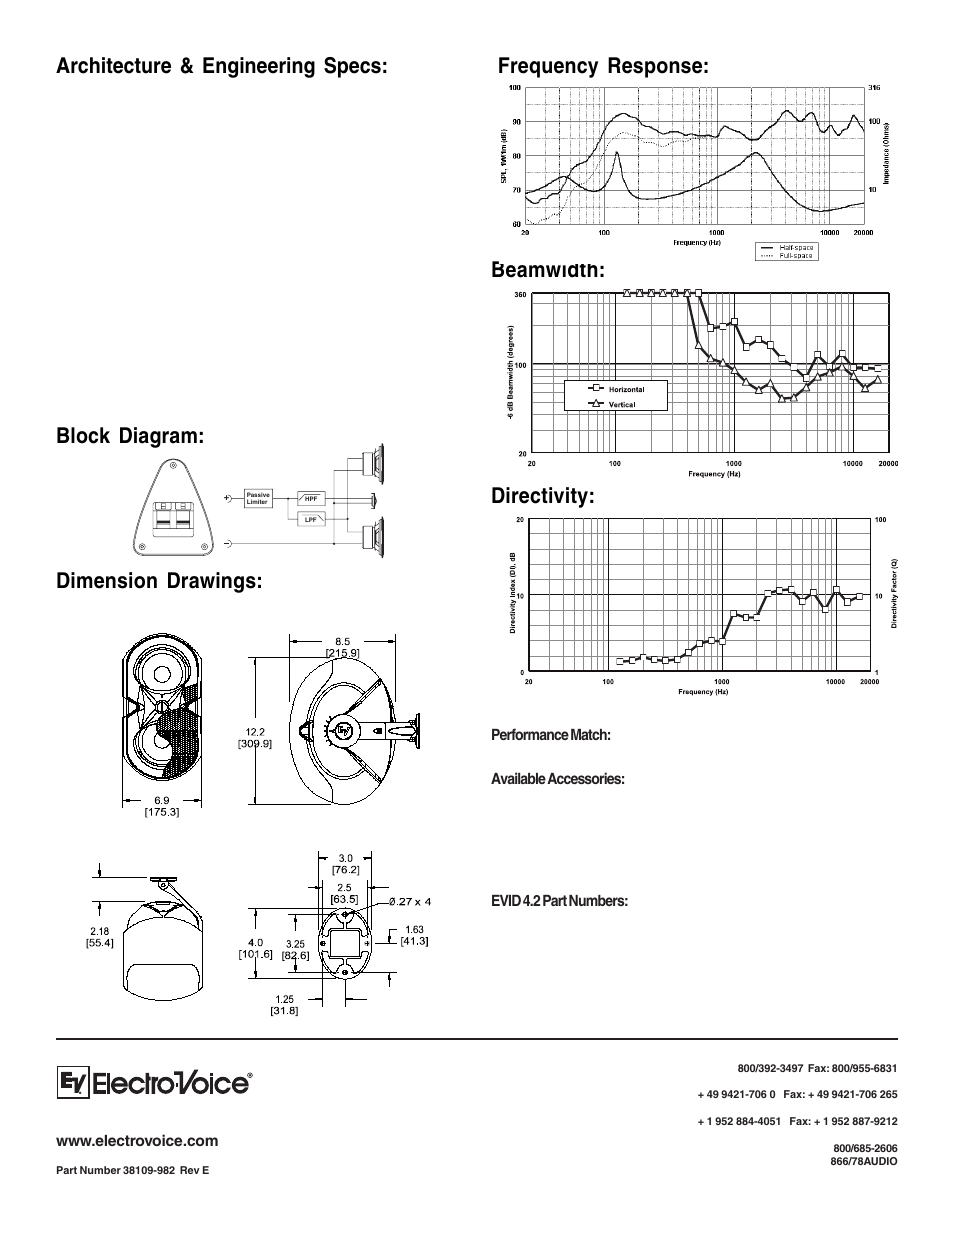 Architecture & engineering specs, Dimension drawings | Electro-Voice  Compact Full-Range Speaker